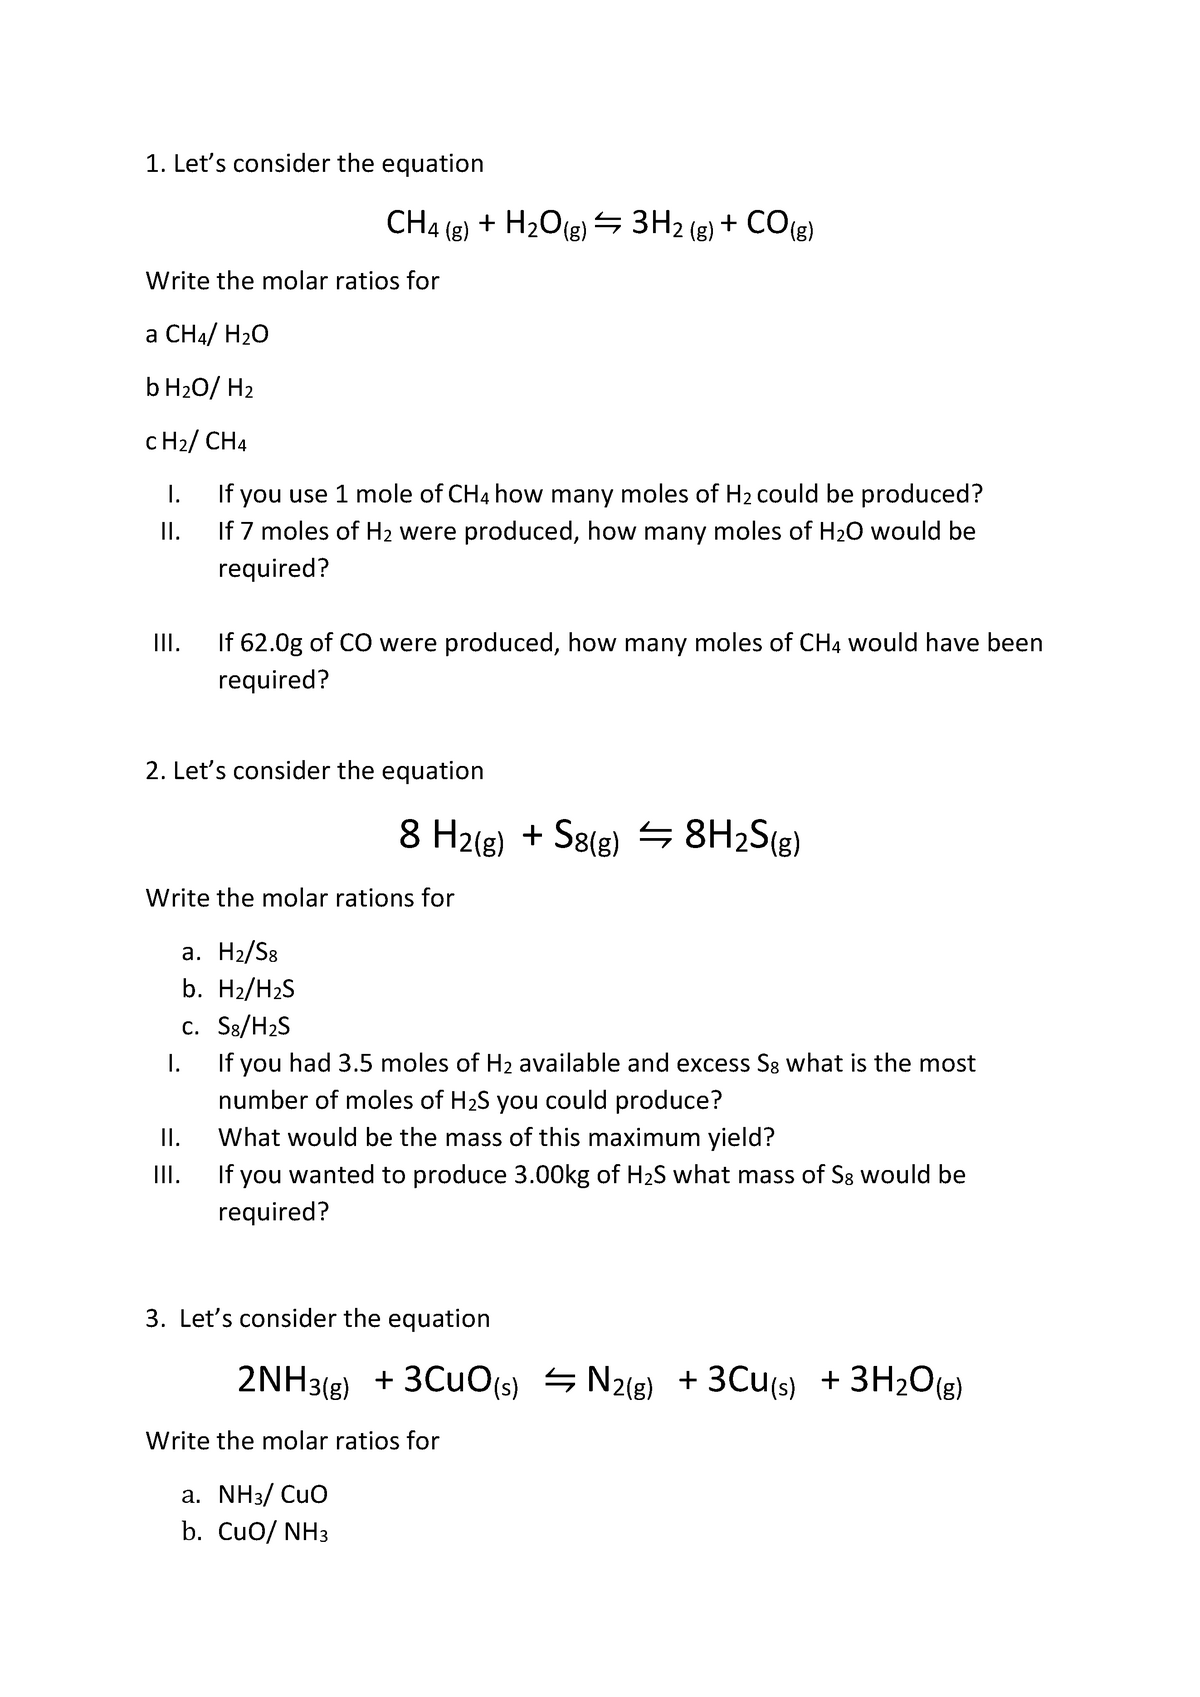 Mole ratios worksheet - questions and answers - CHEM1003